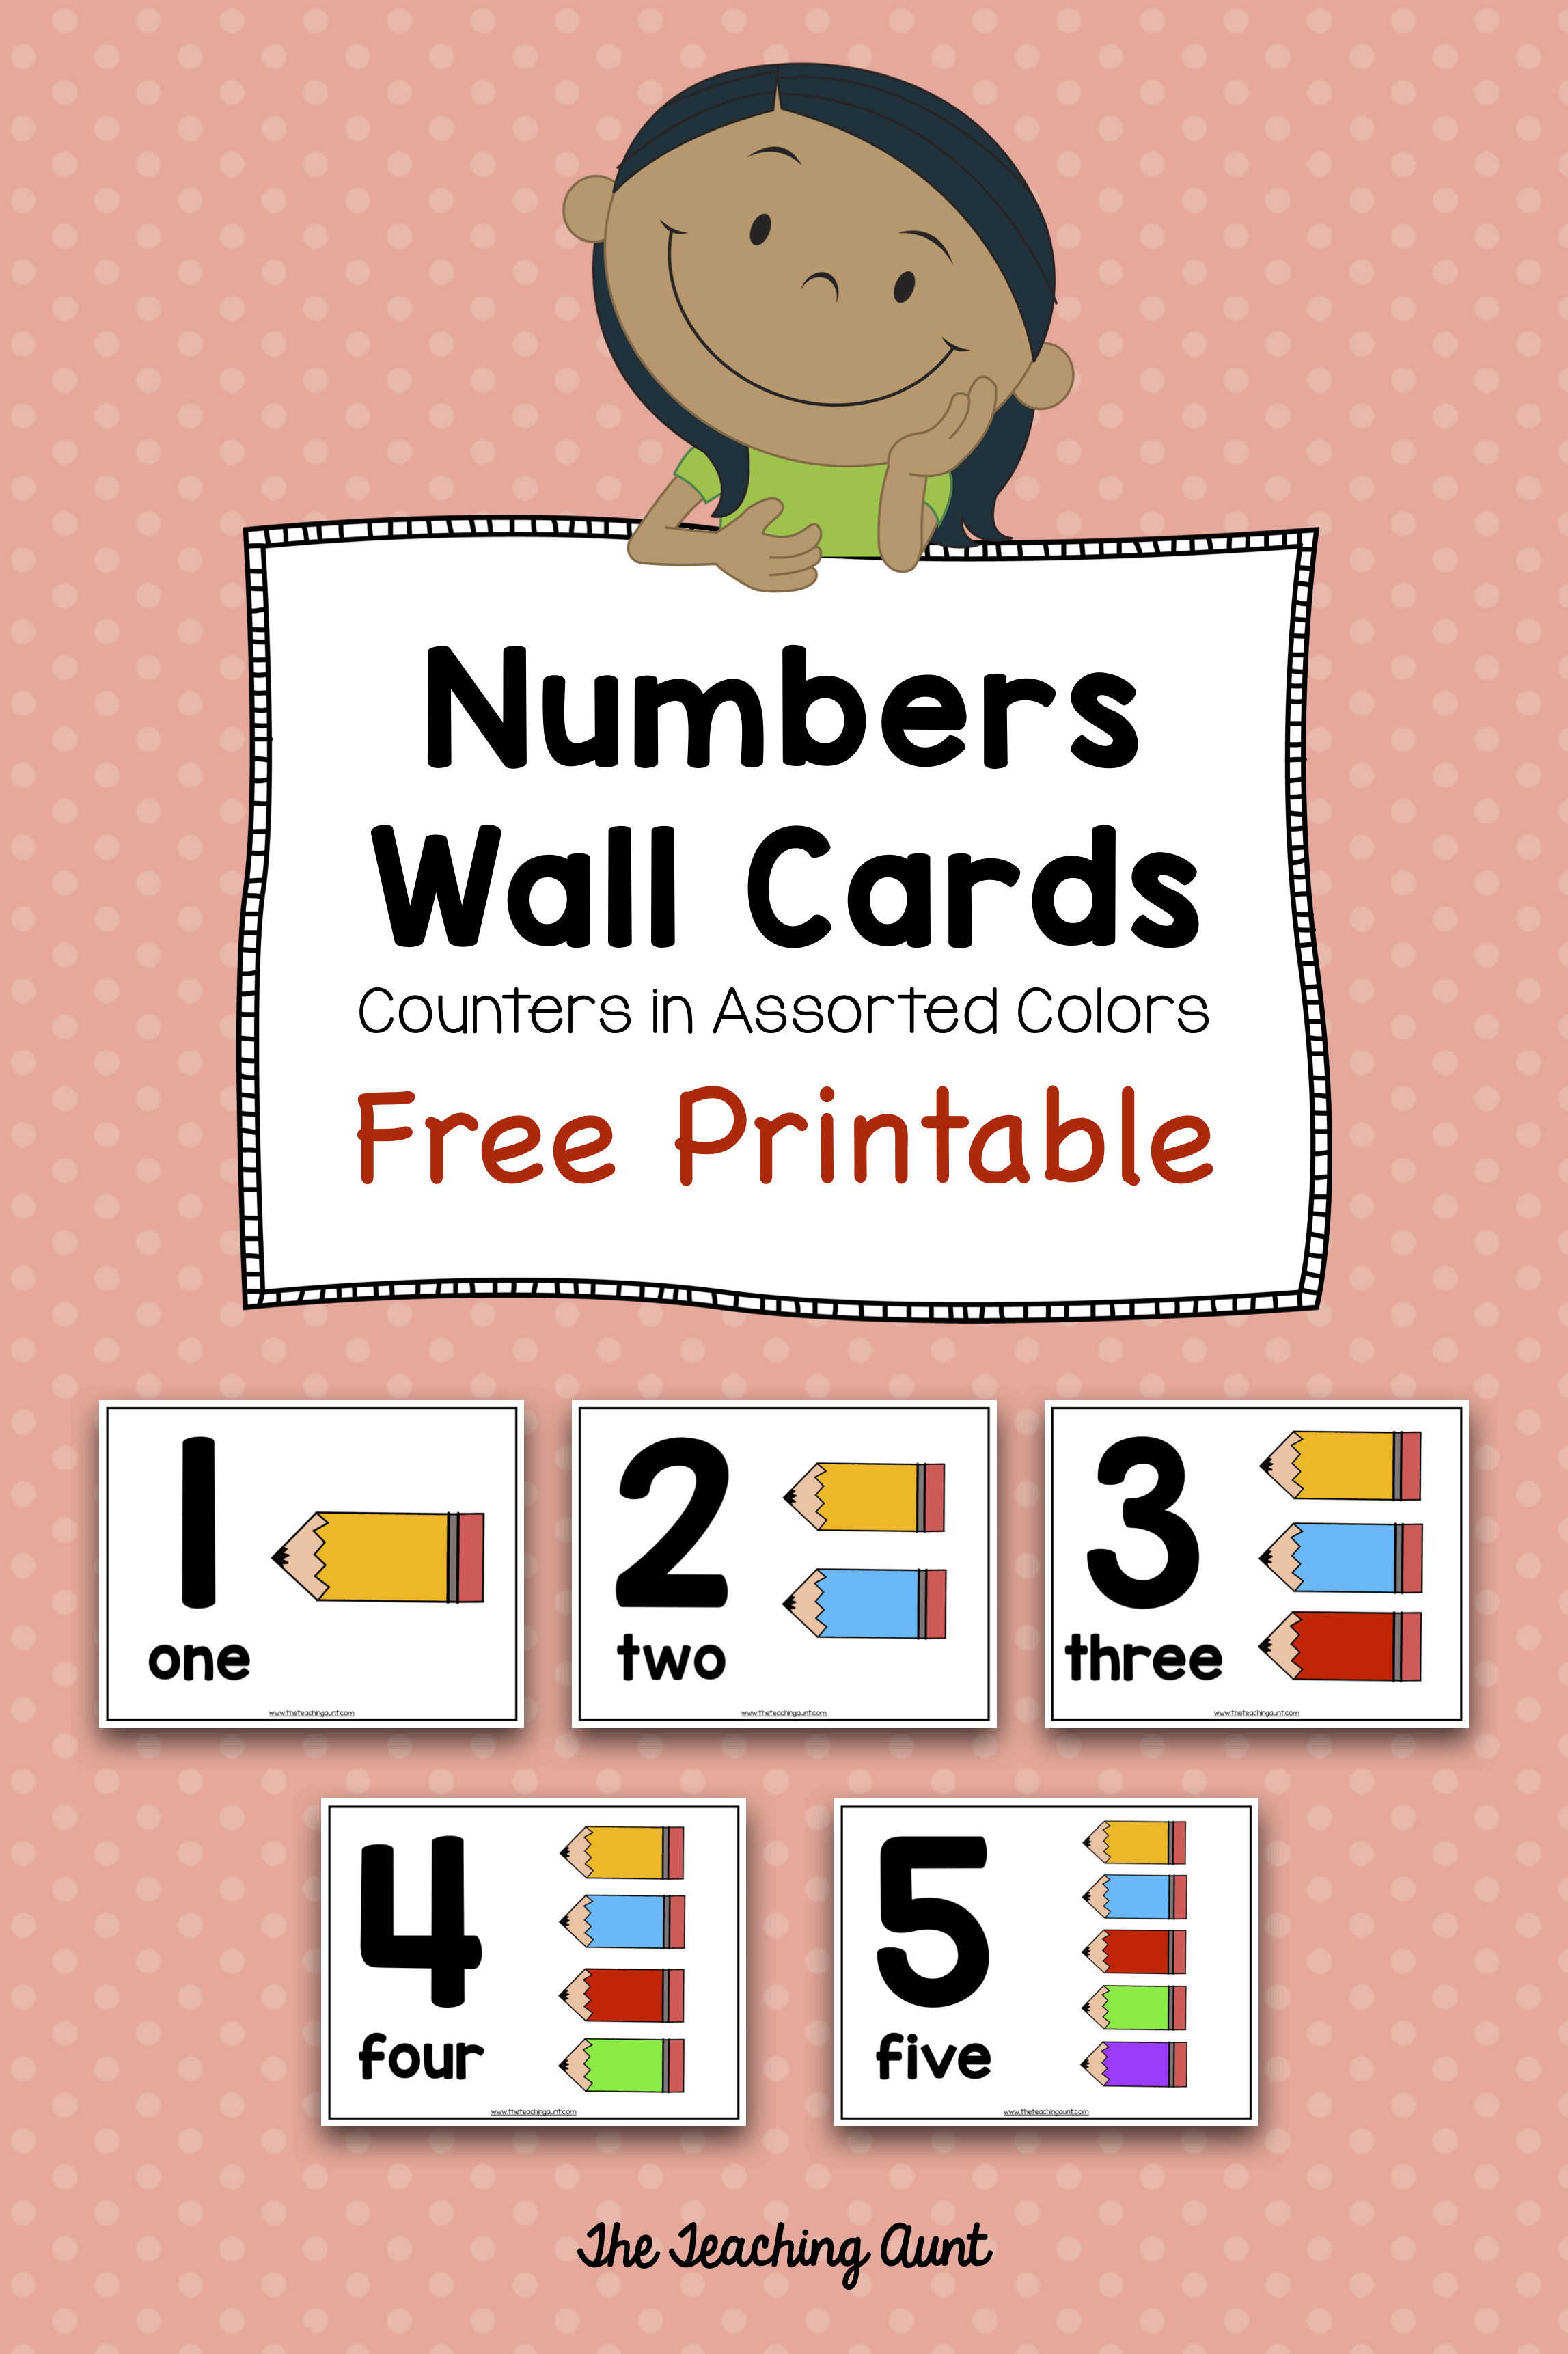 photograph relating to Printable Numbers 1-10 referred to as Selection Wall Playing cards for Preschoolers with Vibrant Pencil